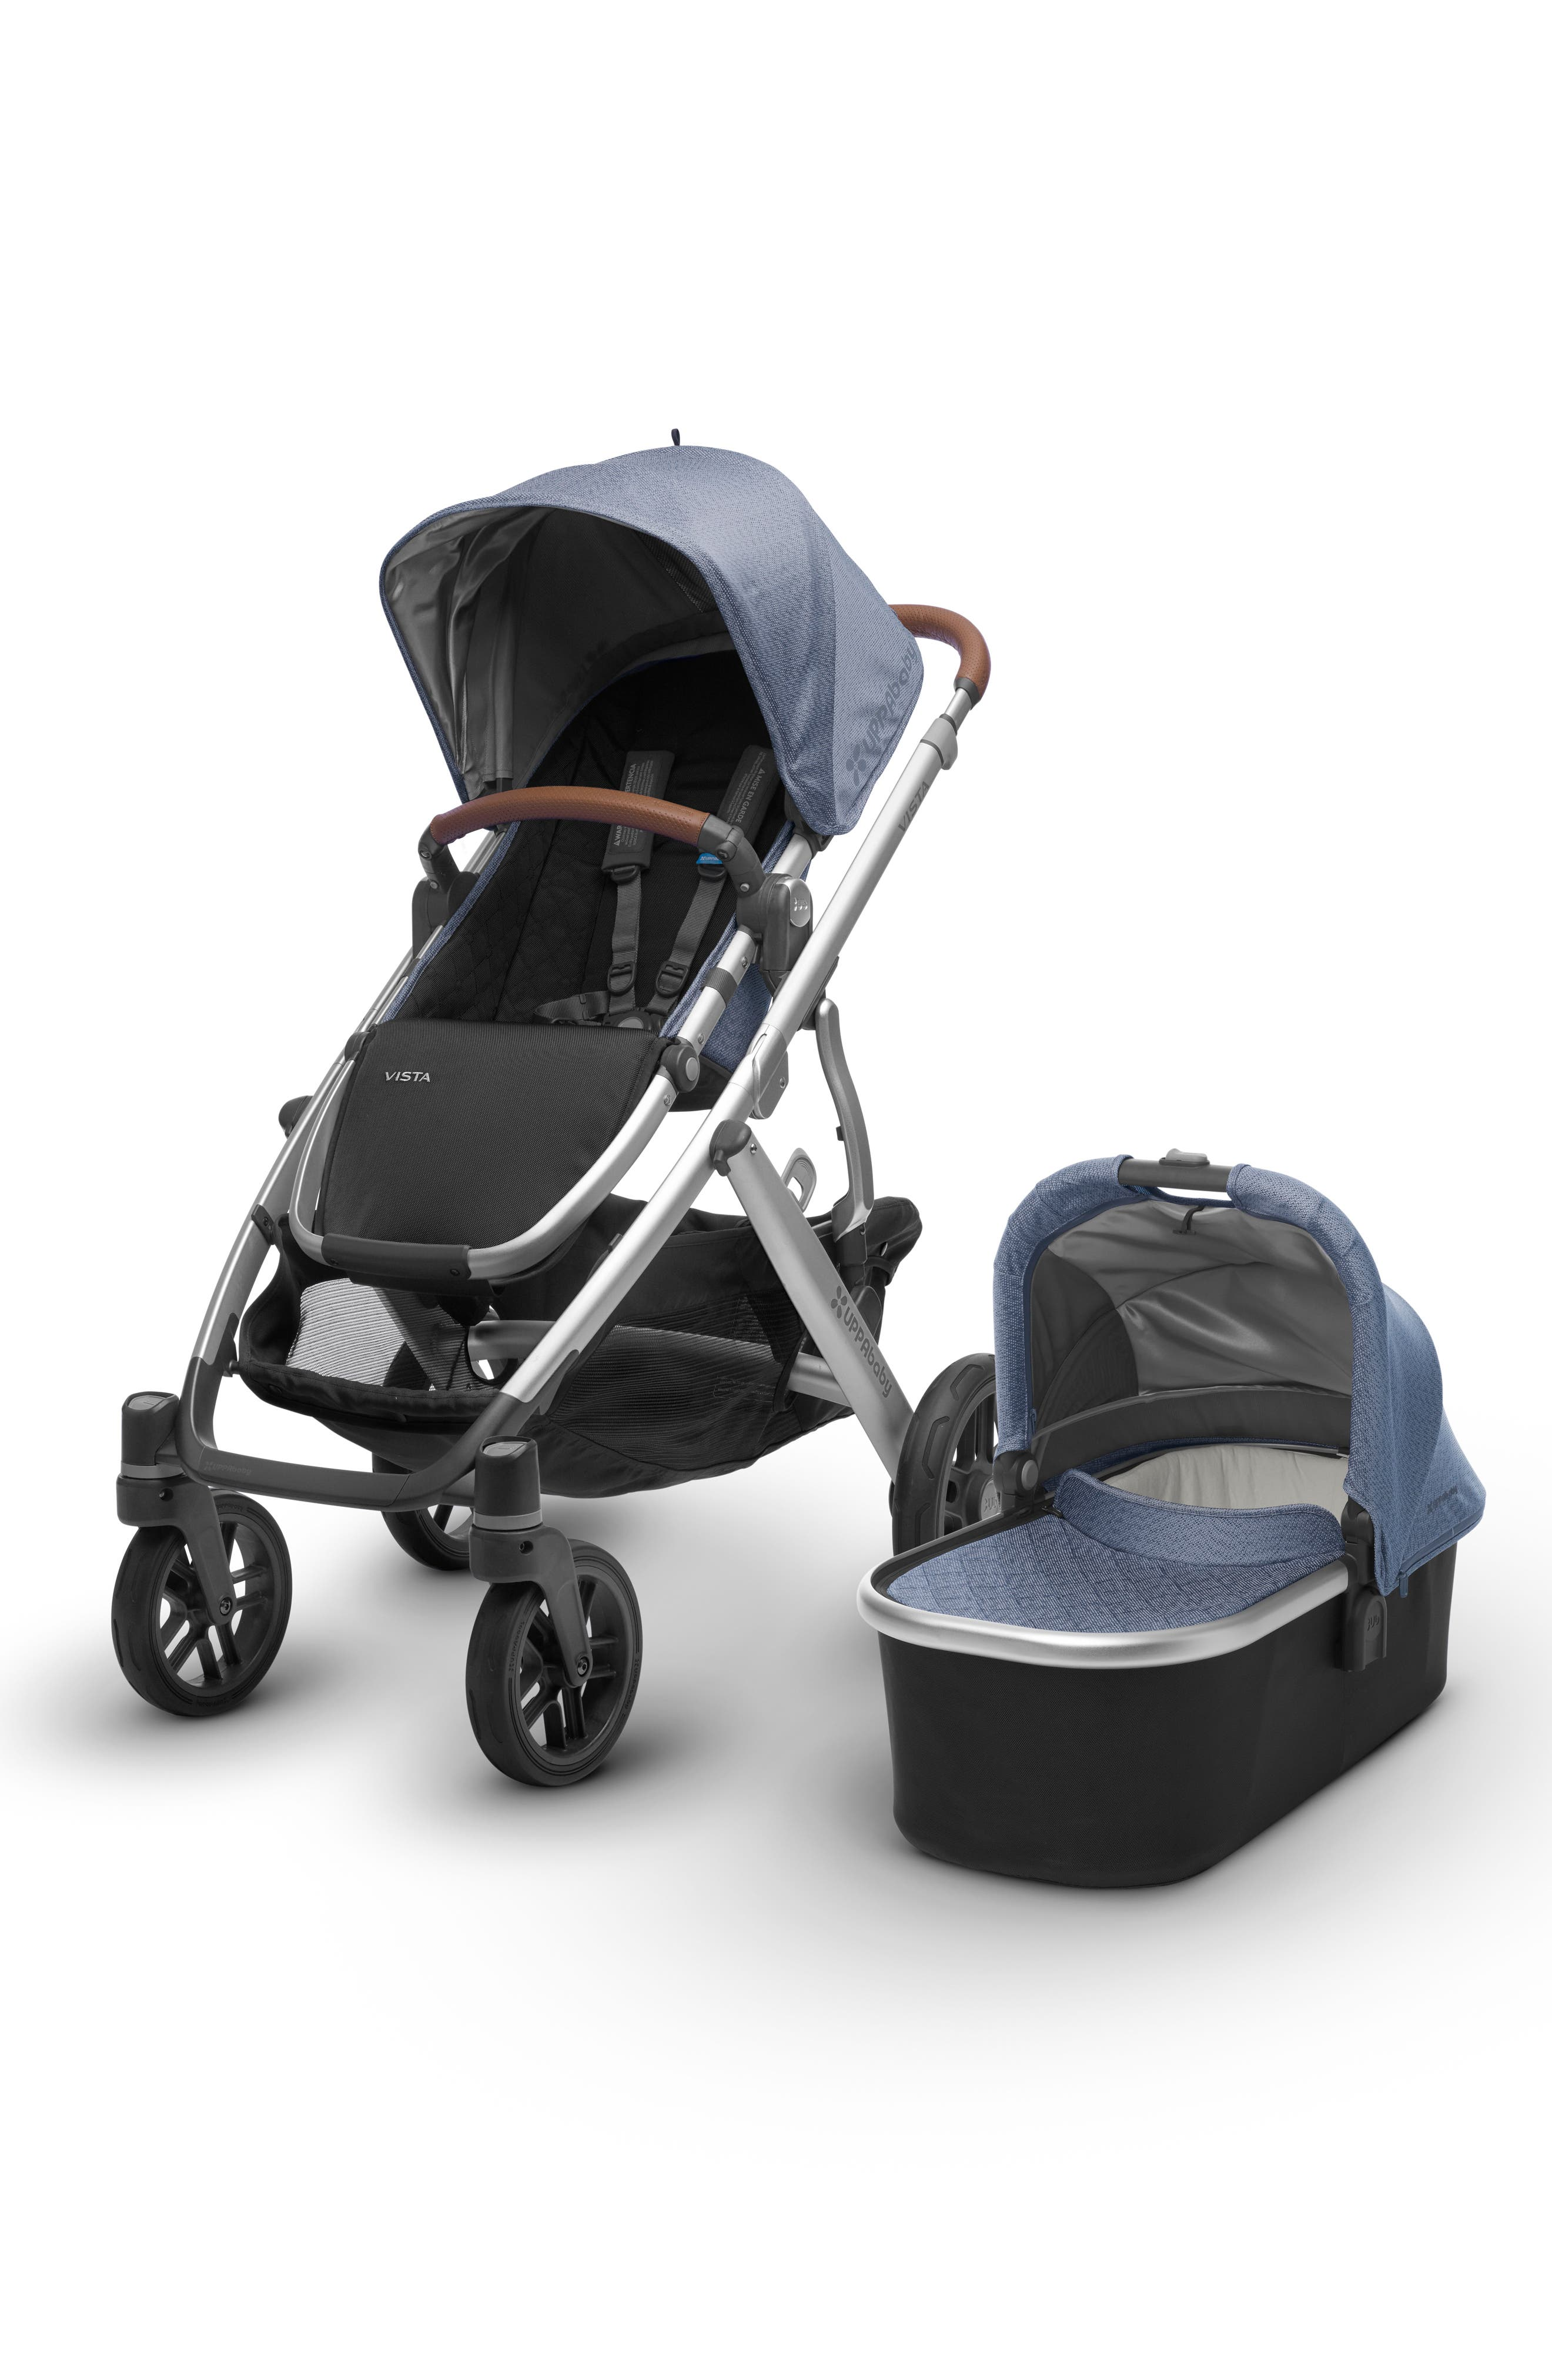 2018 VISTA Aluminum Frame Convertible Complete Stroller with Leather Trim,                             Alternate thumbnail 3, color,                             Henry Blue Marl/ Silver